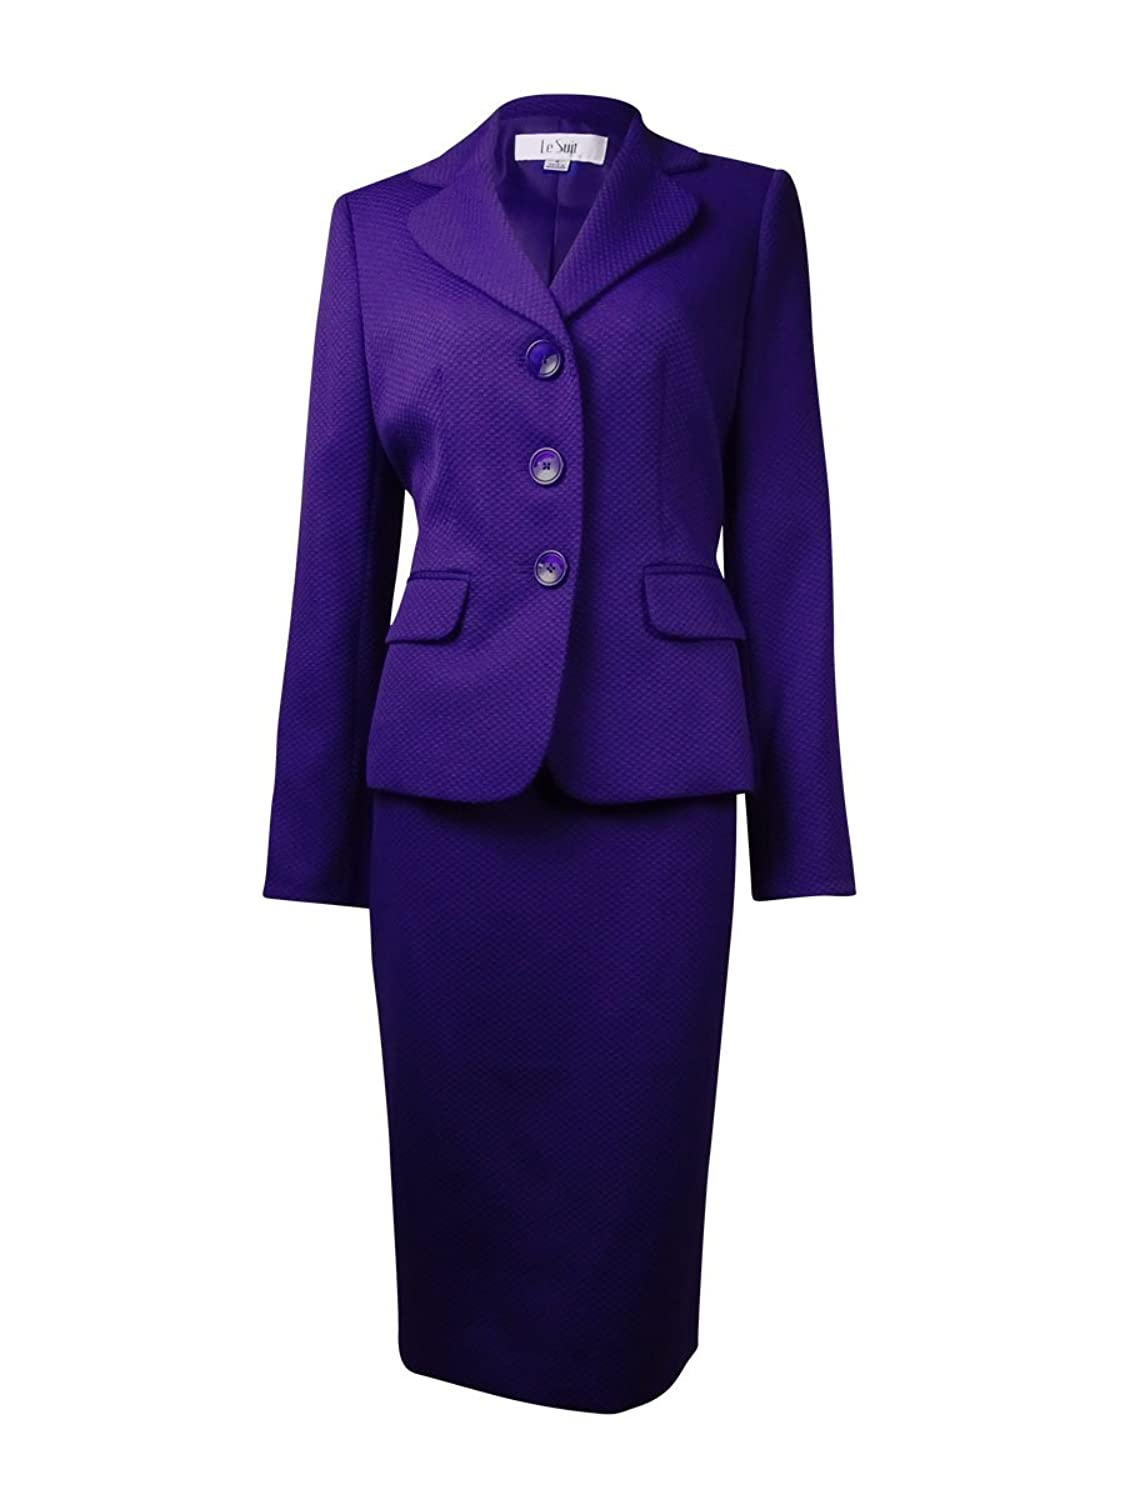 Le Suit Women's Country Club Textured Skirt